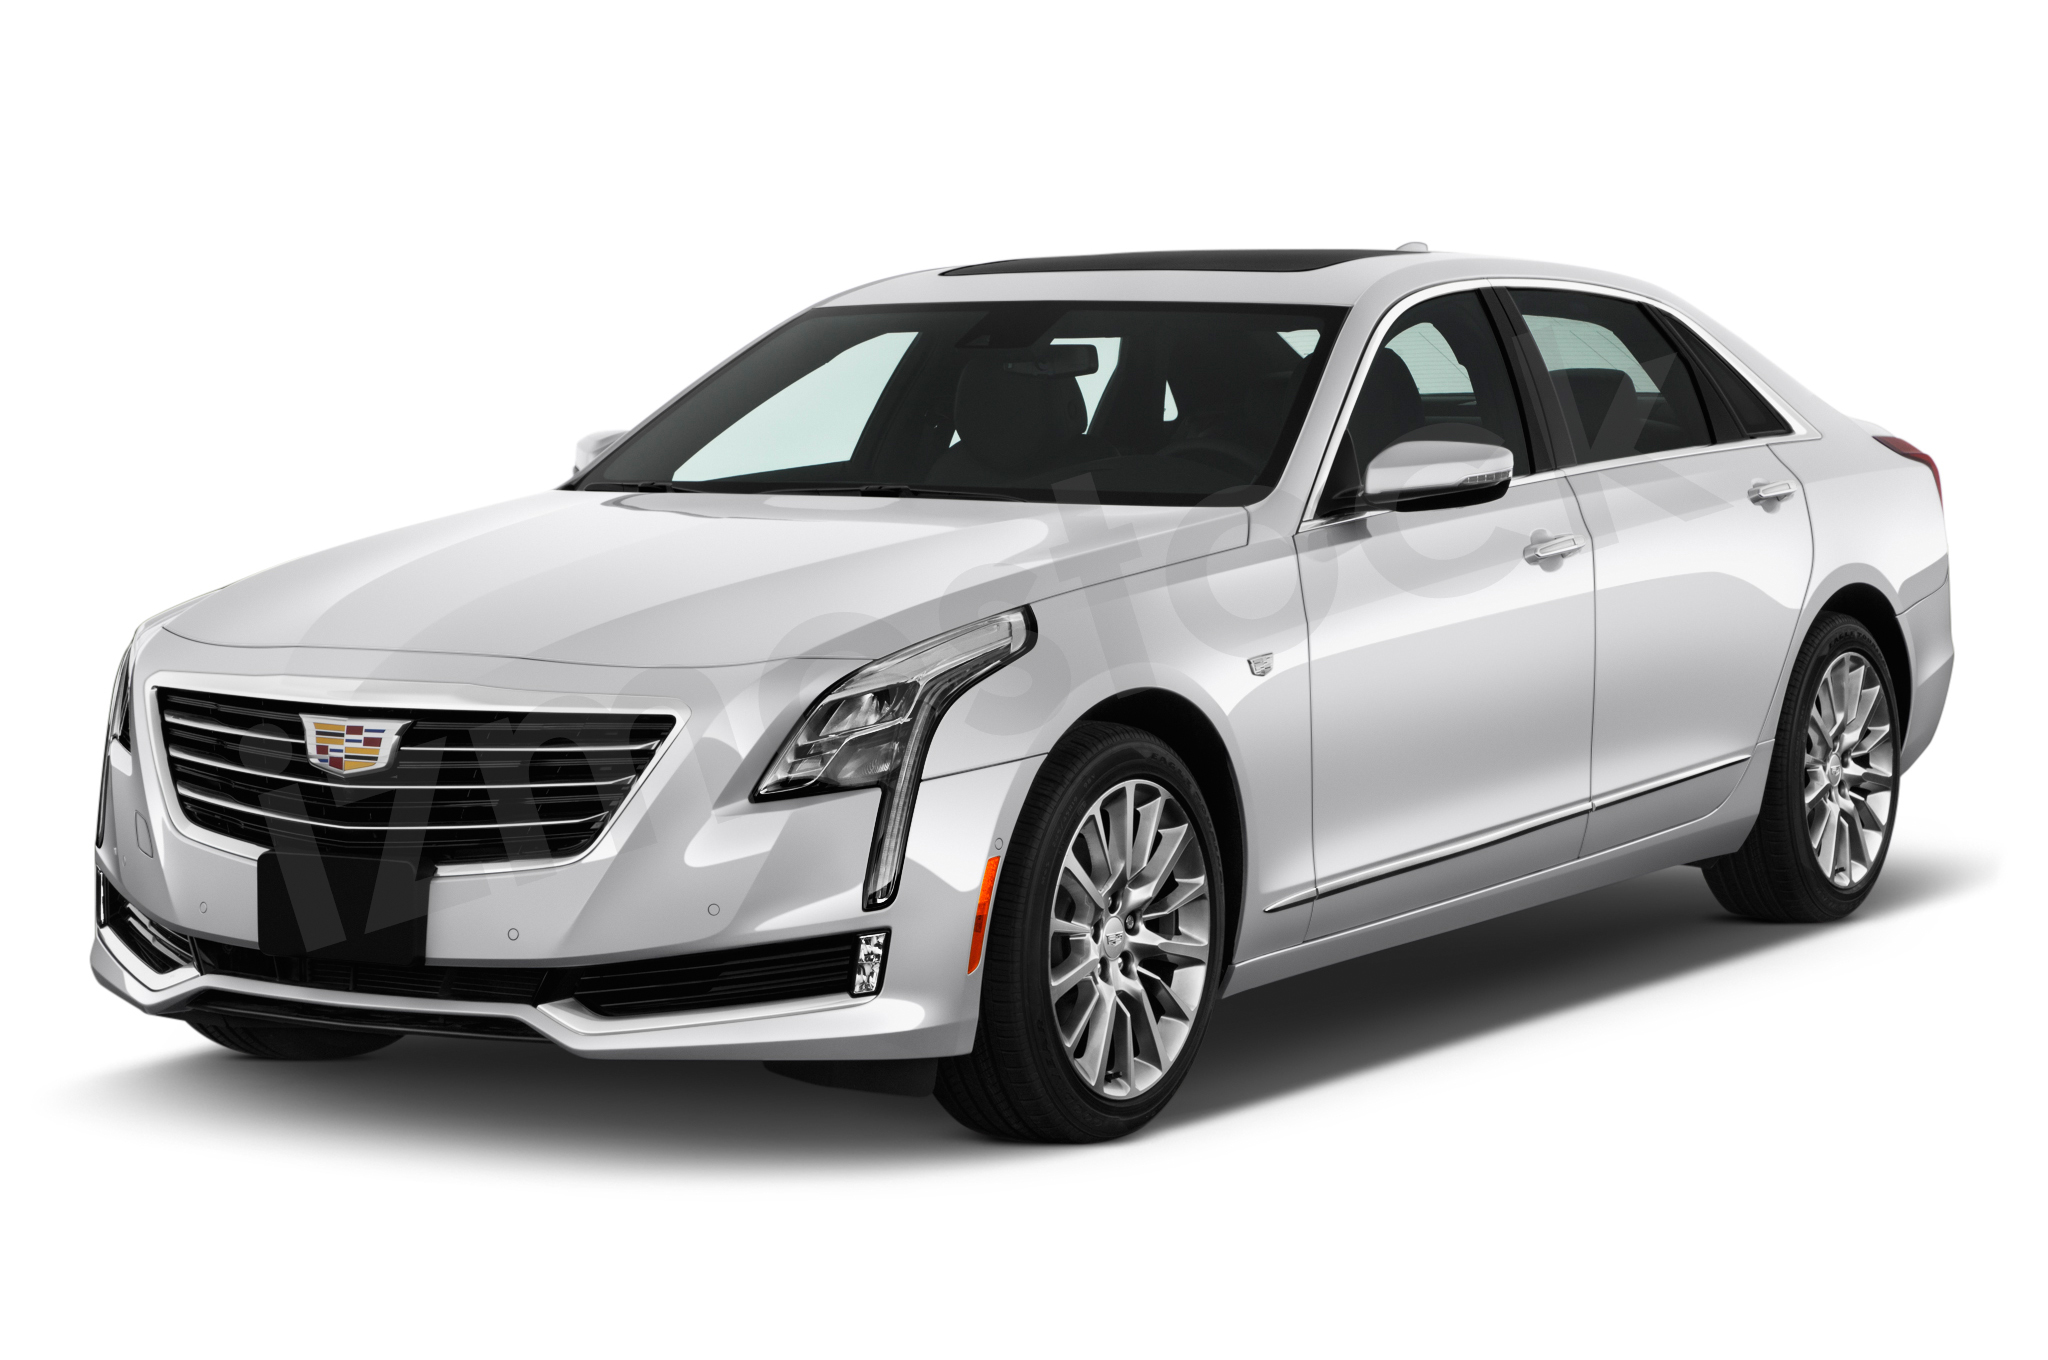 2017 cadillac ct6 pictures specs review and price. Black Bedroom Furniture Sets. Home Design Ideas